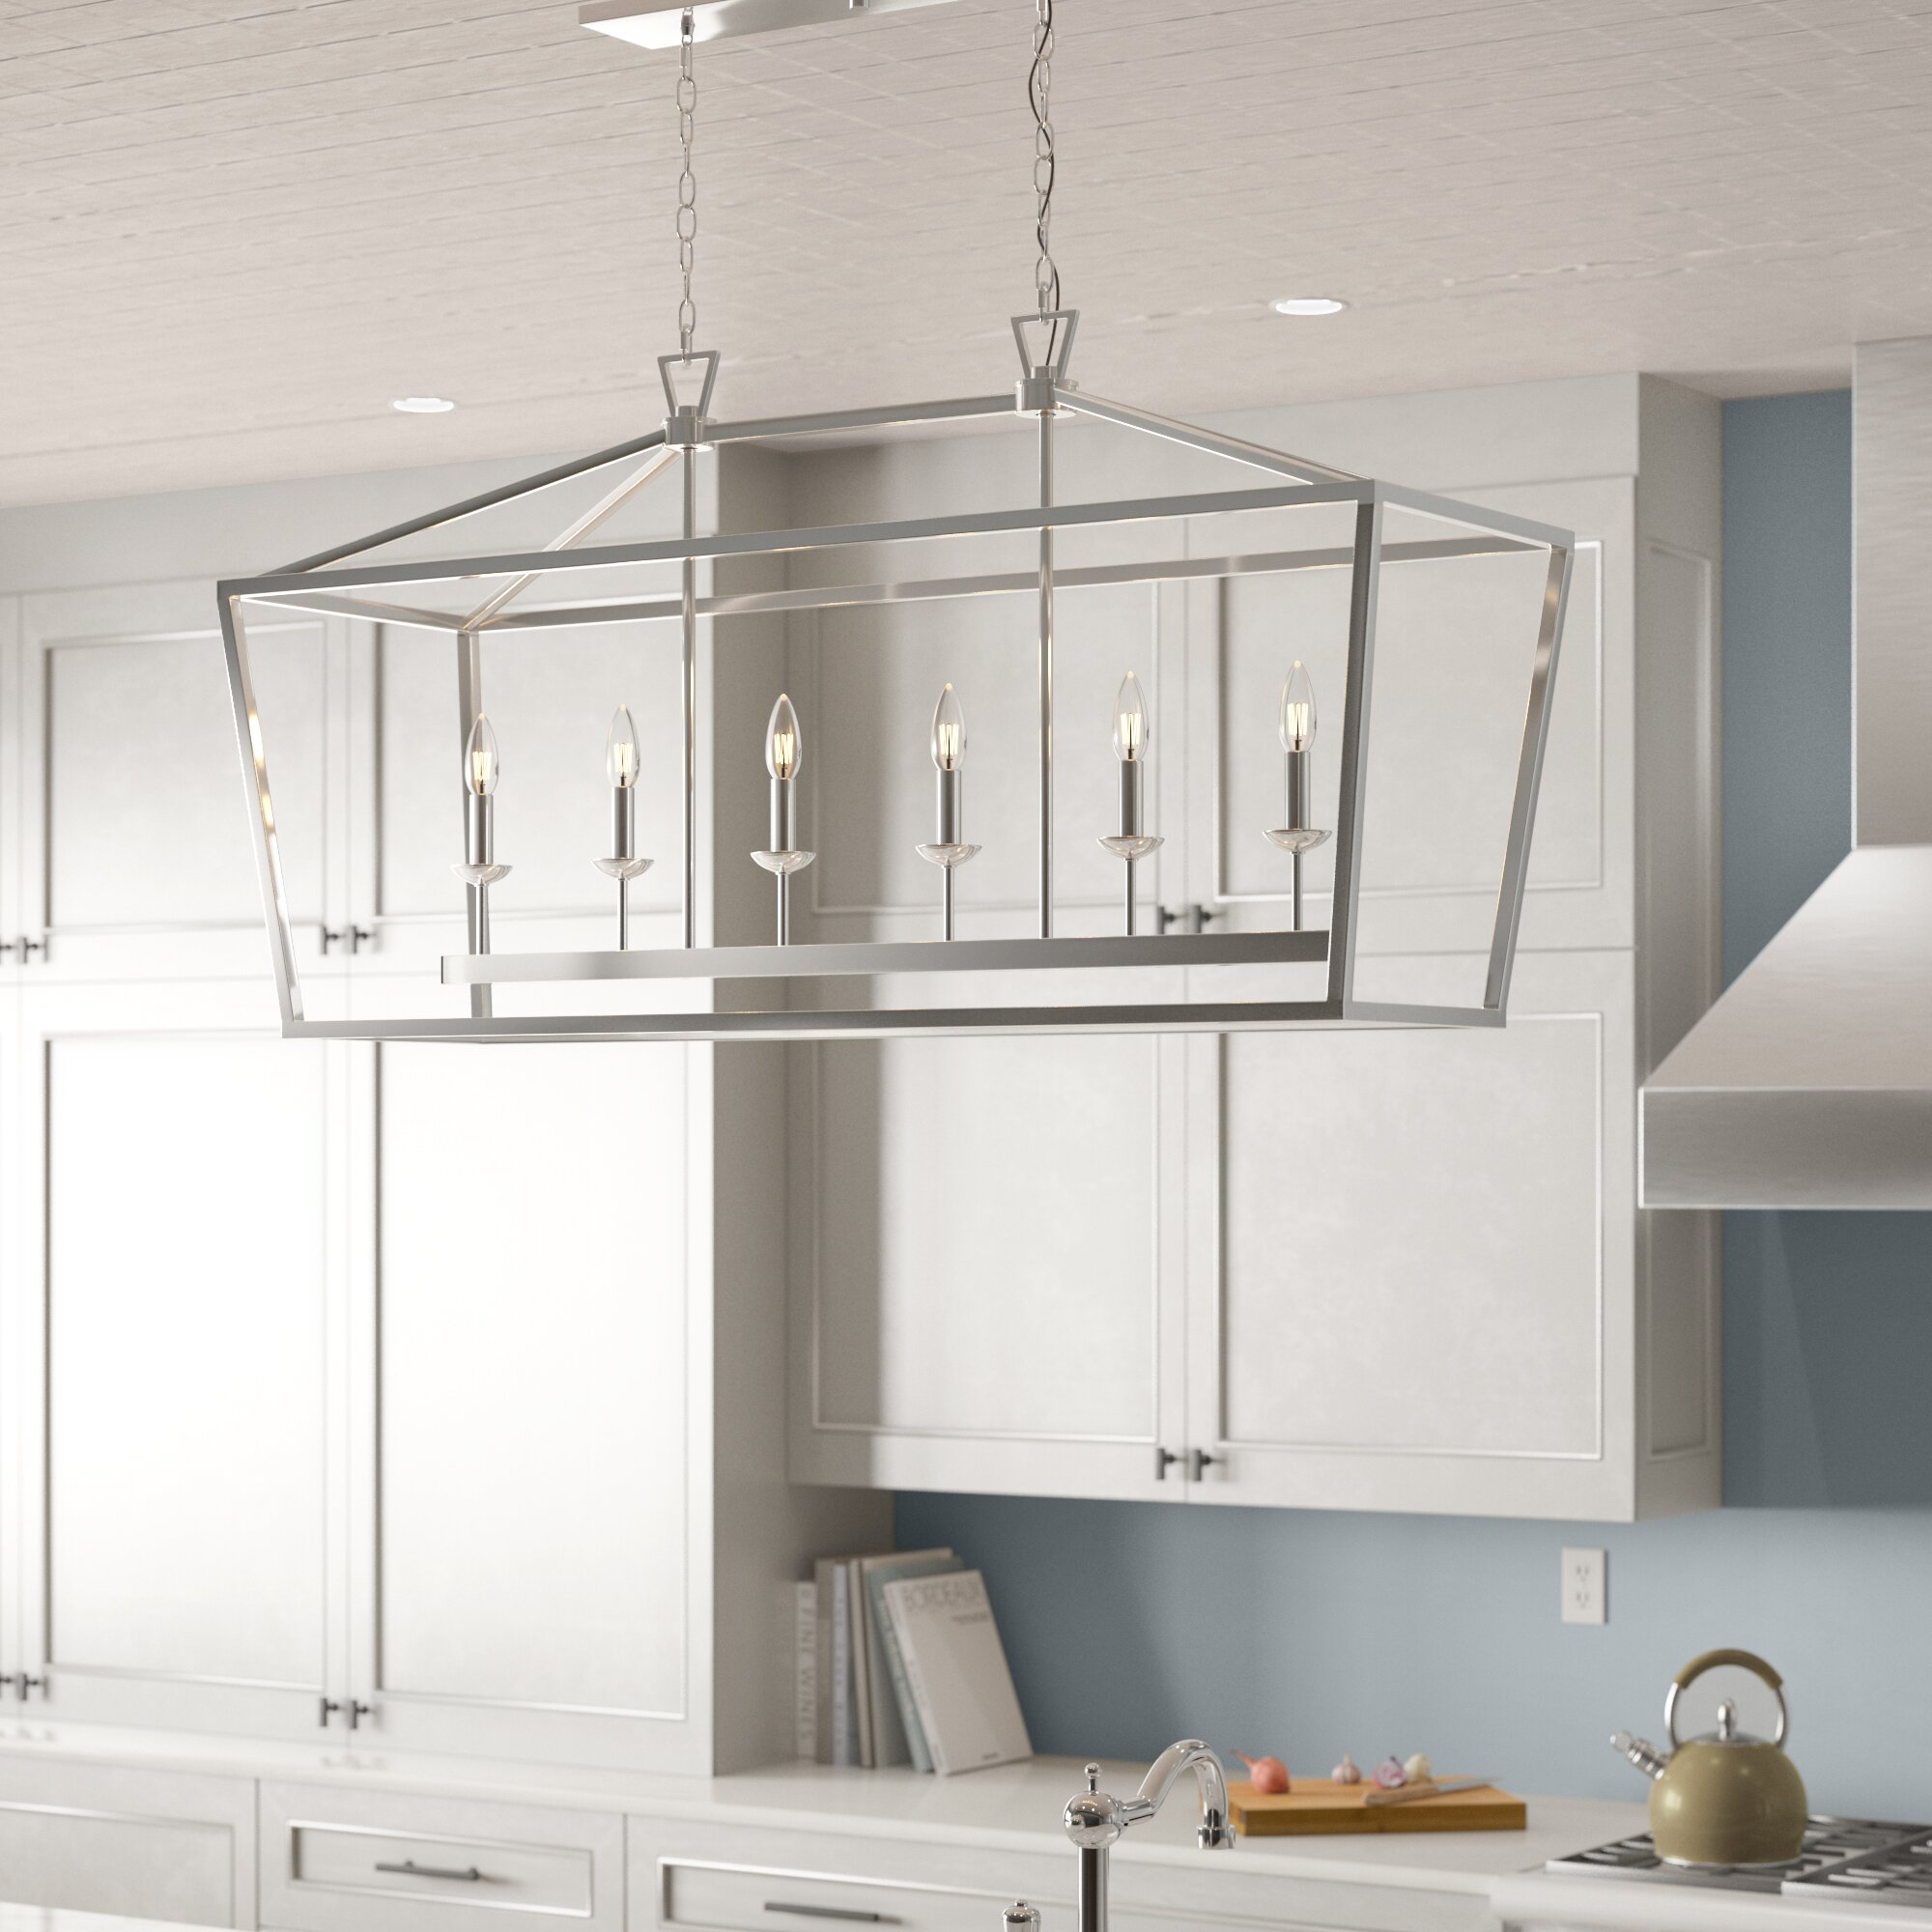 Linear lantern pendant that's an amazing price on Flash Deal!